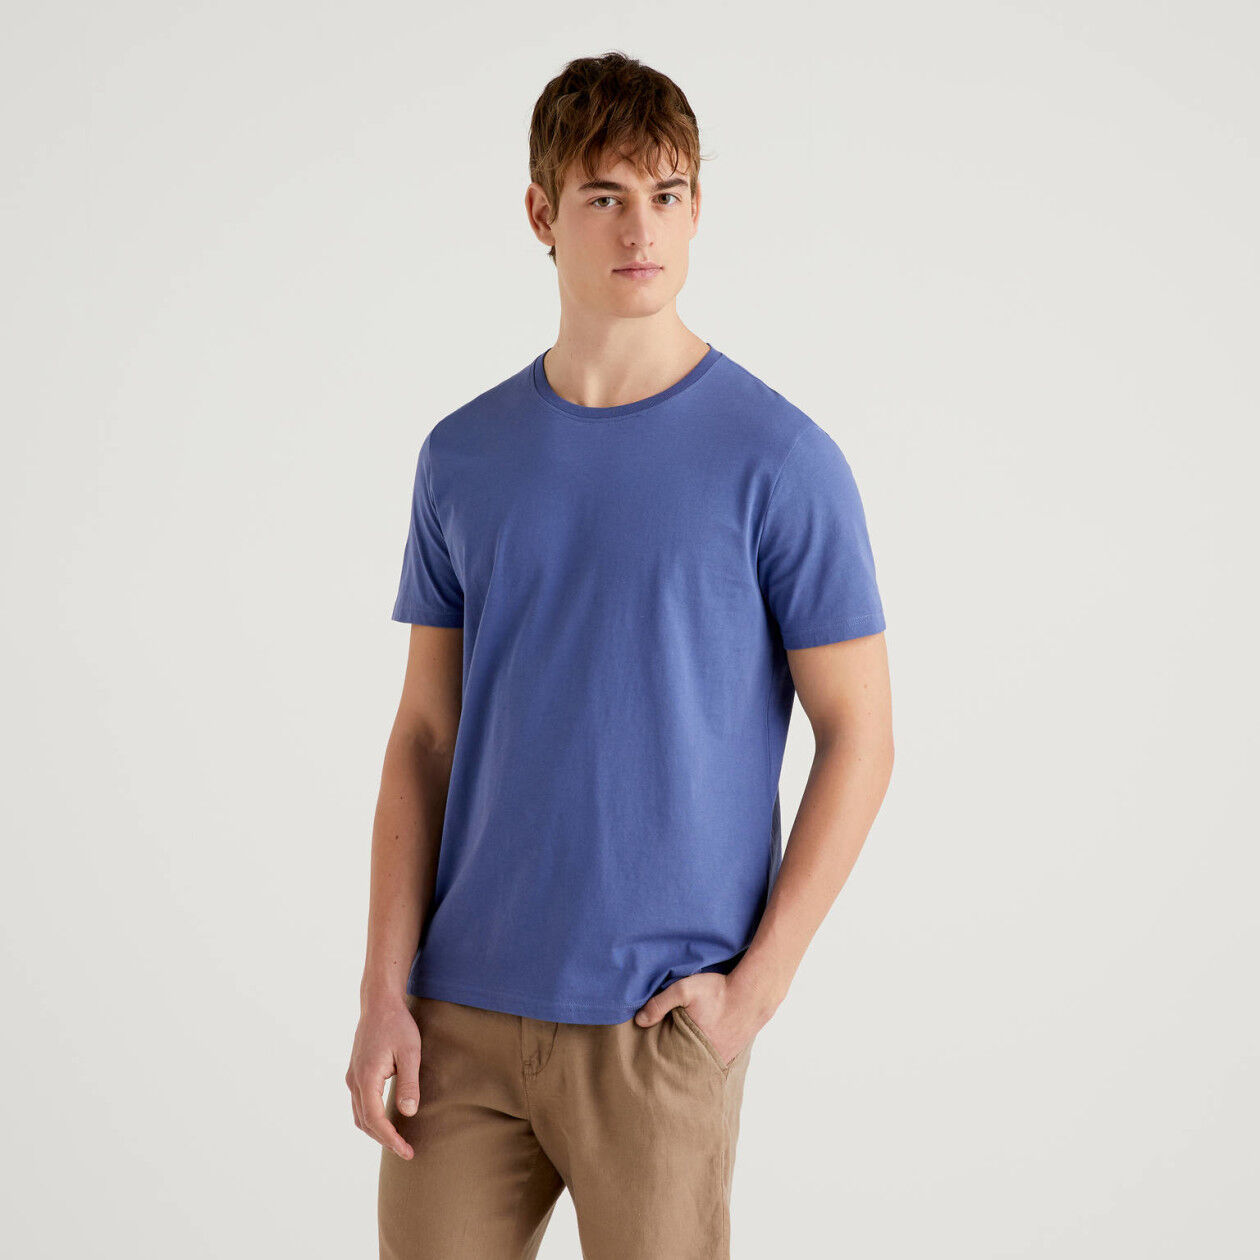 Air force blue t-shirt in pure cotton